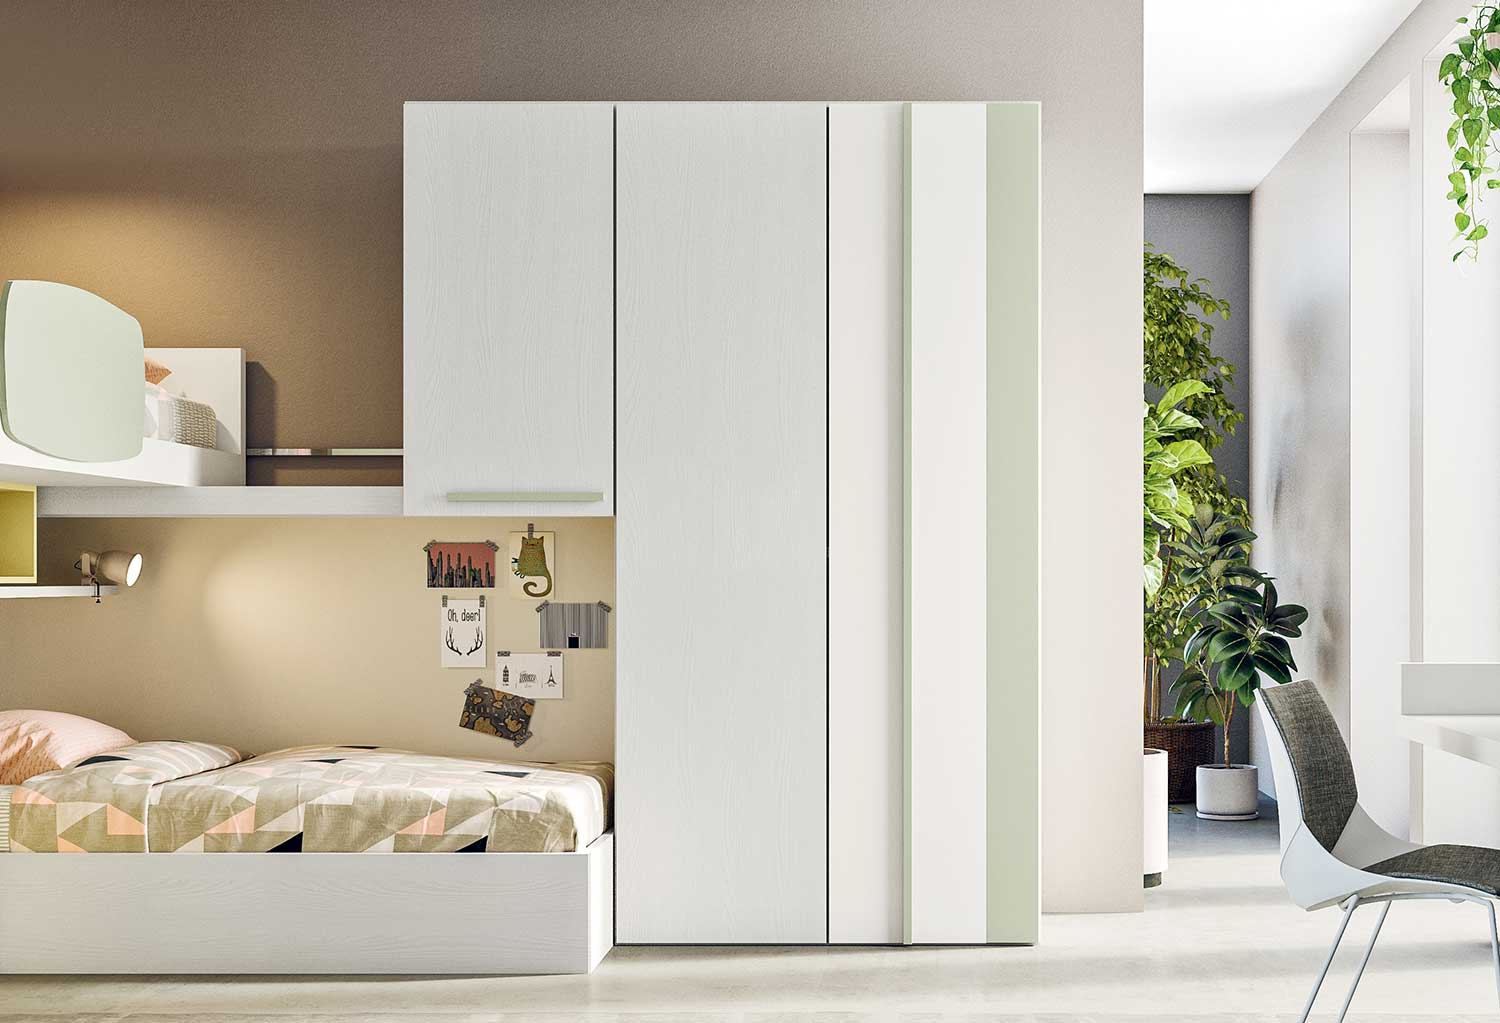 Modular kids' bedroom wardrobe Stripe, 2 door model with one overbed cabinet